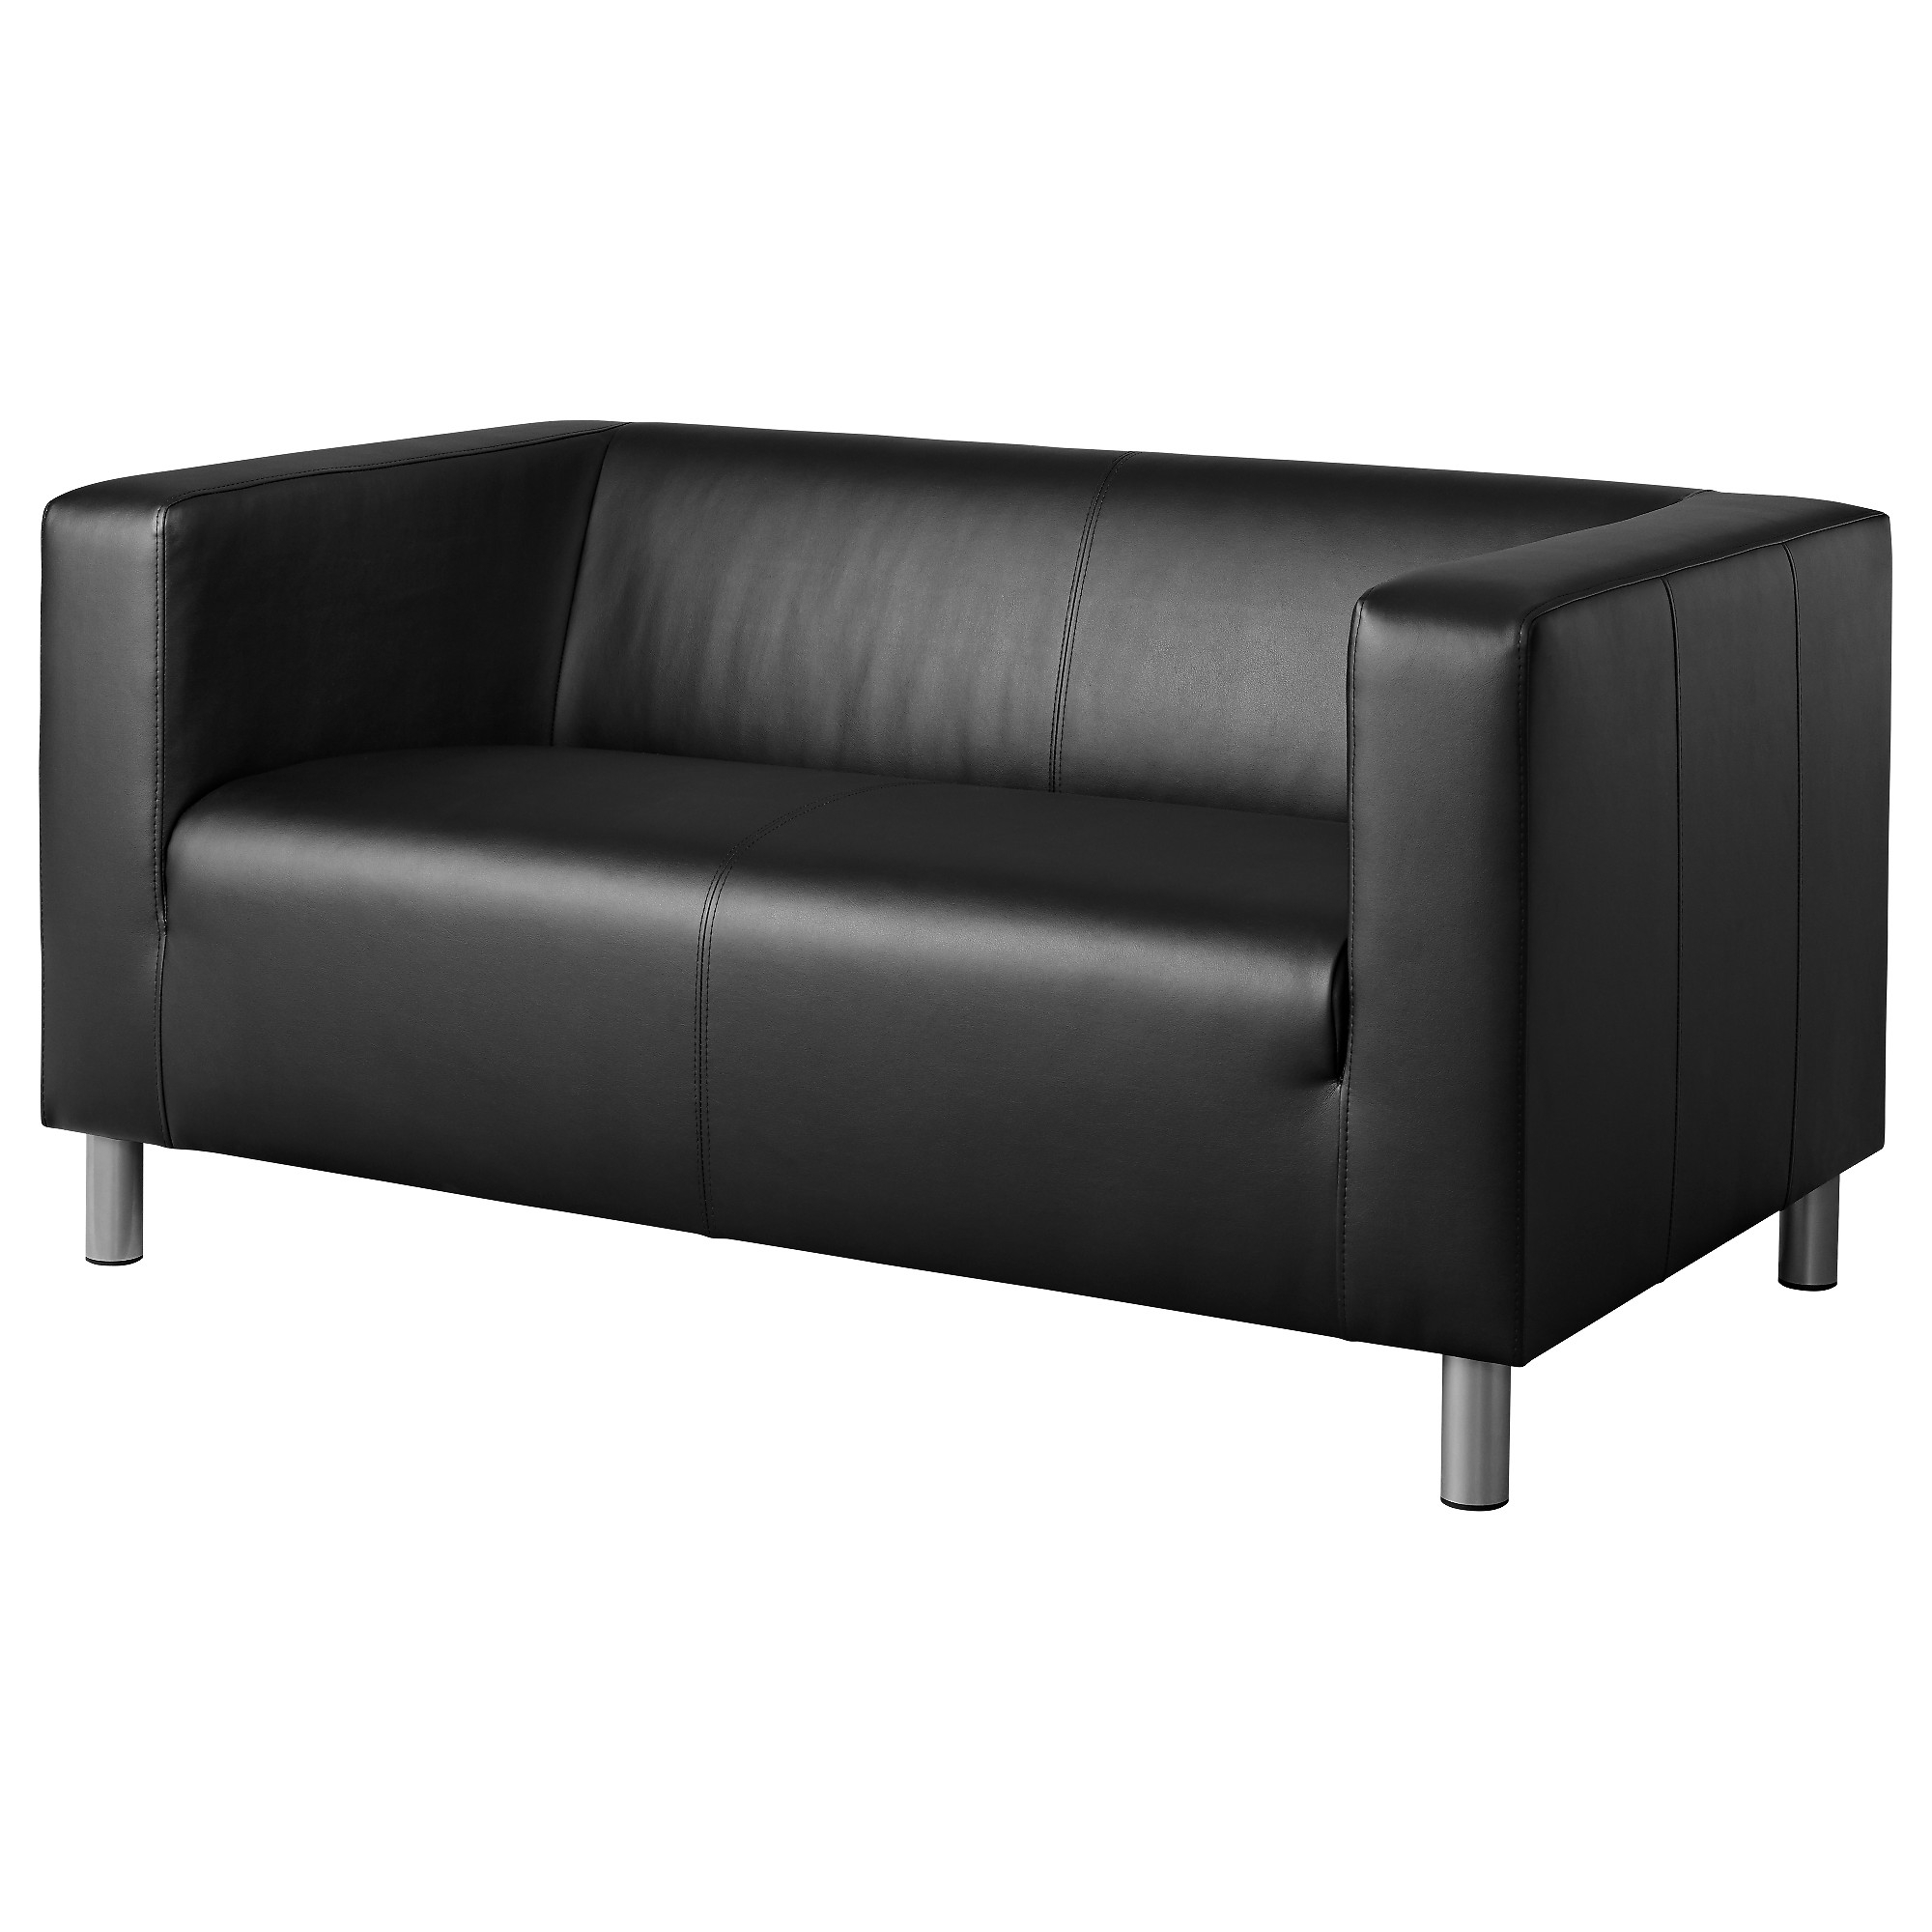 Two Seater Sofas | Ikea Ireland - Dublin for Ikea Small Sofas (Image 7 of 10)